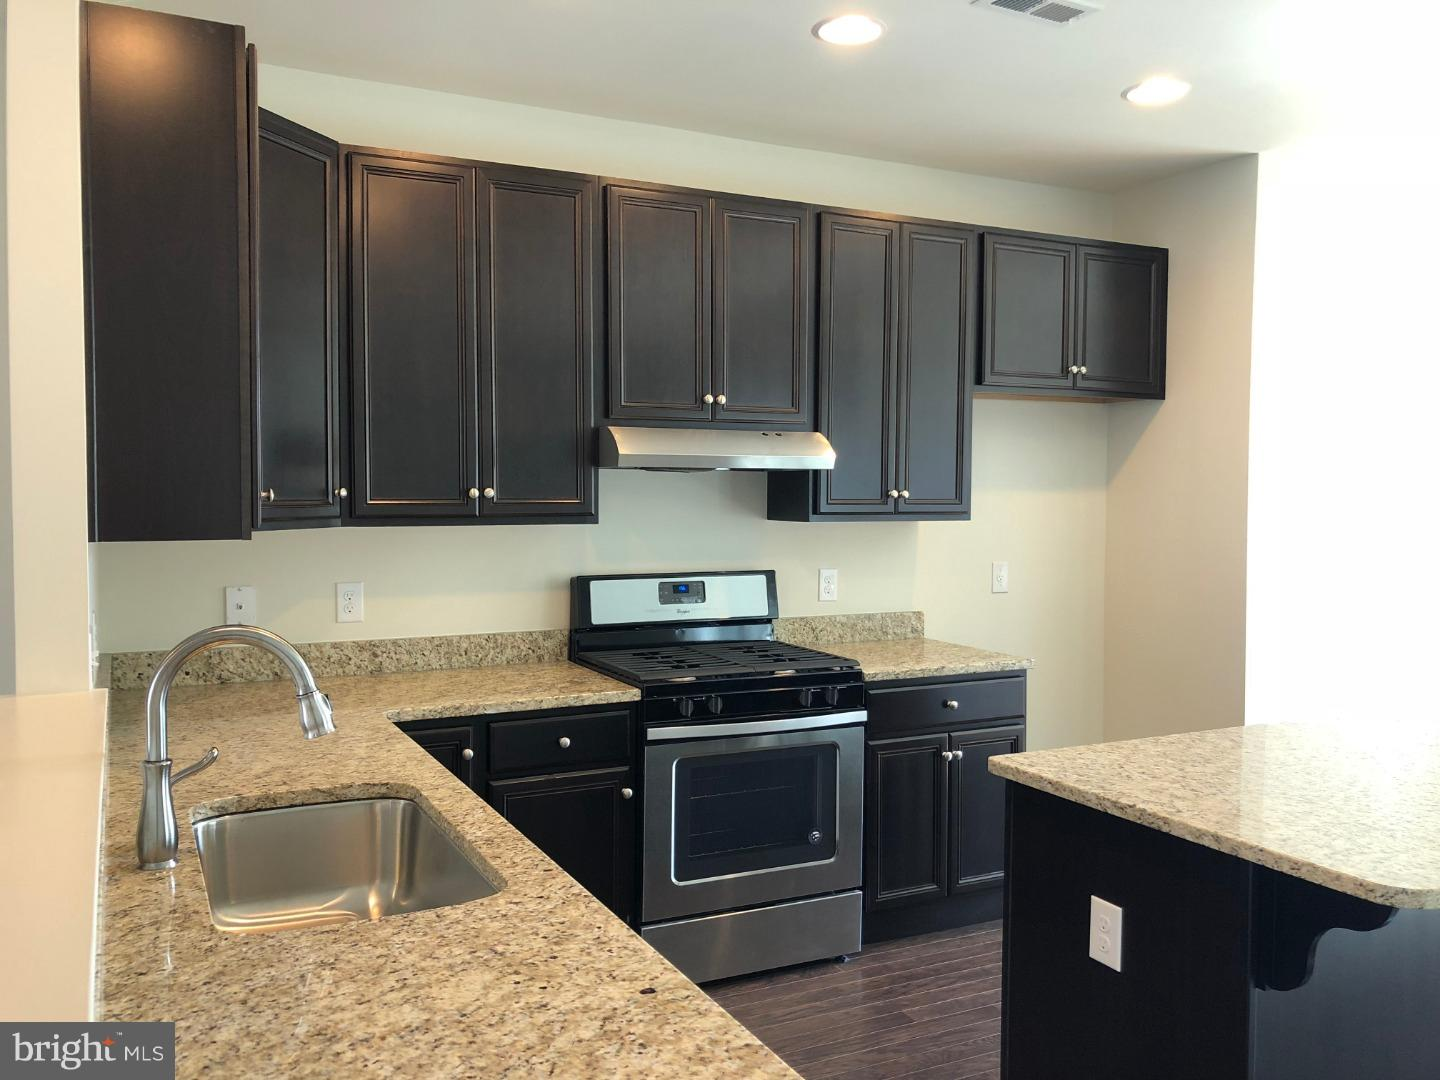 Move-In Ready!!! Montchanin Builders' rarely available Chesterfield floor plan is now available! Thi